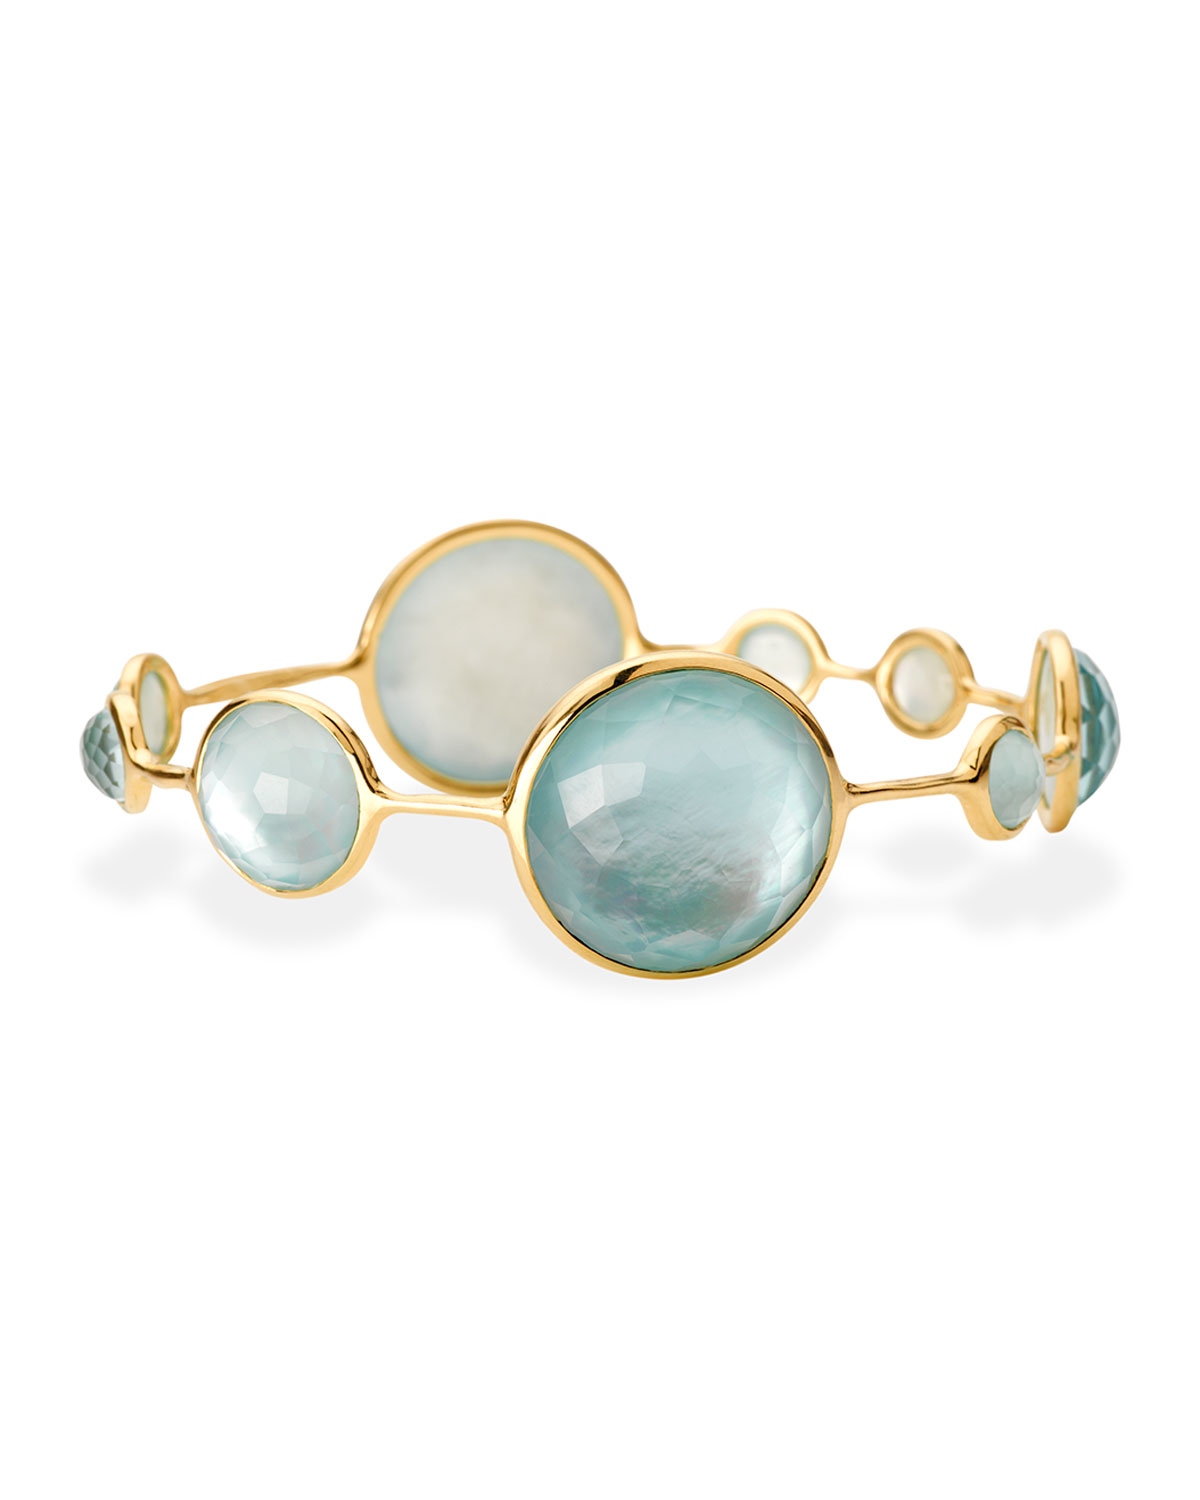 Ippolita 18K Gold Rock Candy Bangle in Mother-of-Pearl 8fykG